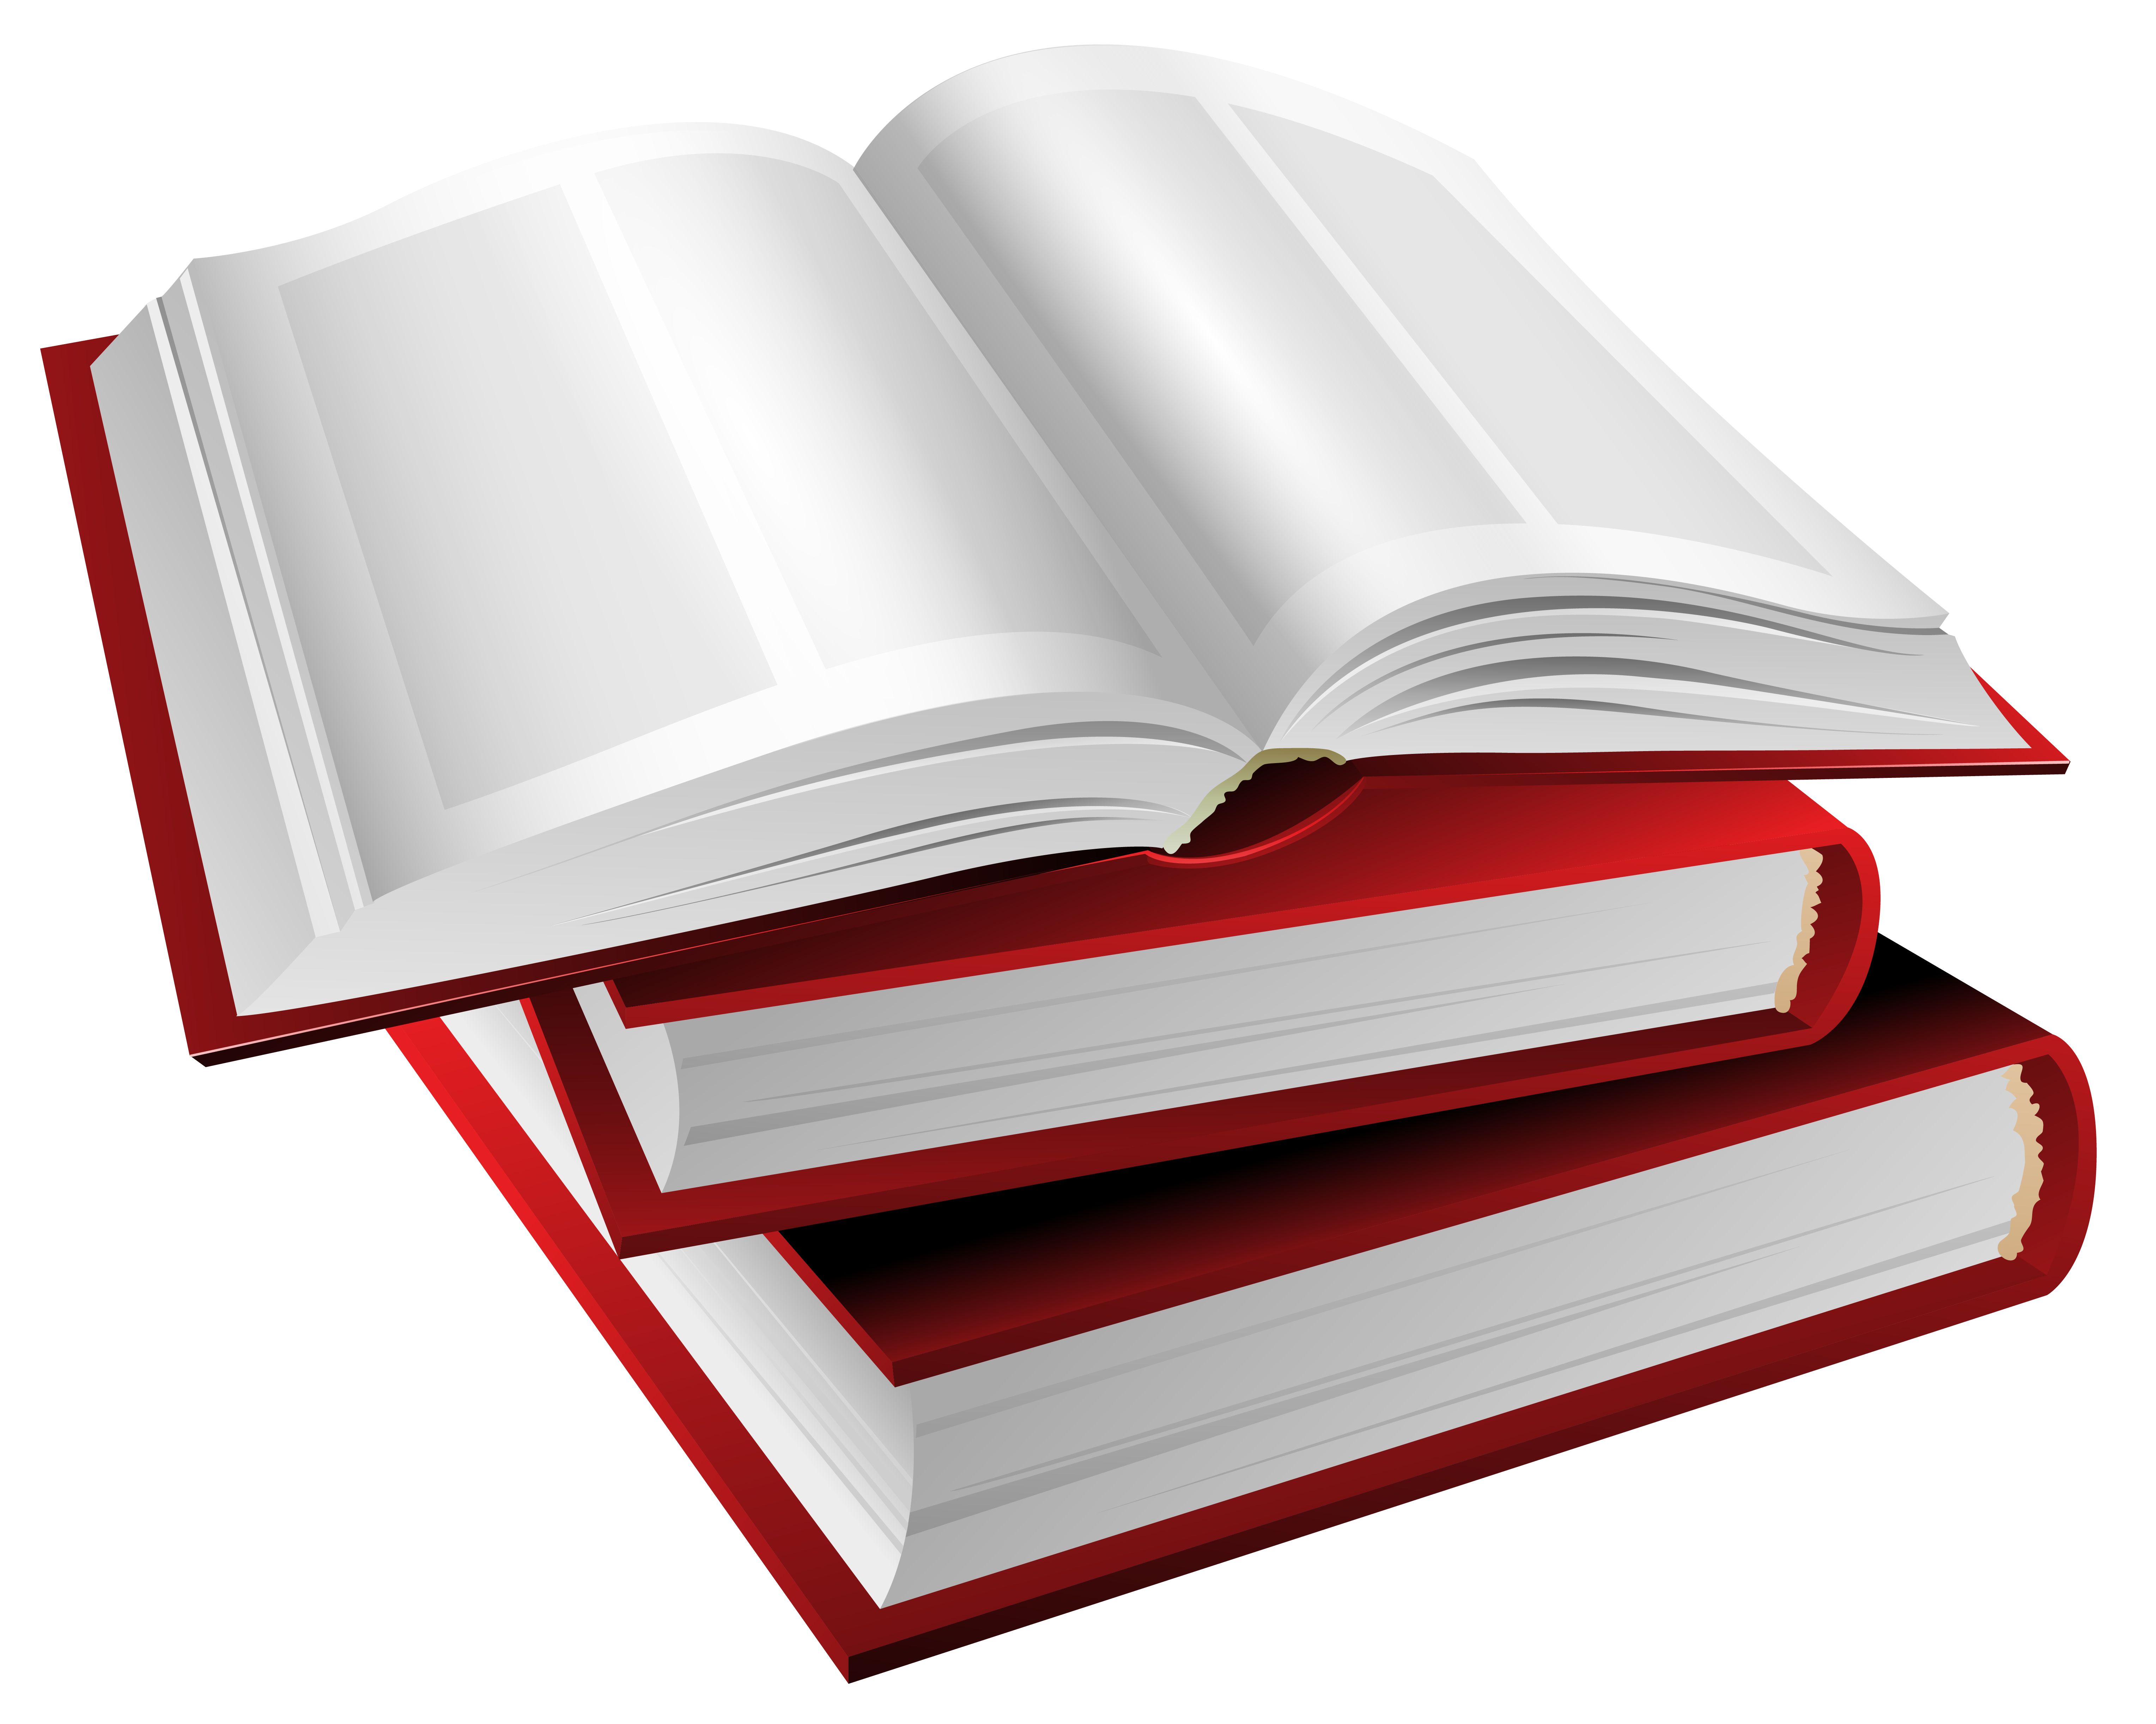 Books png transparent. Red clipart image gallery